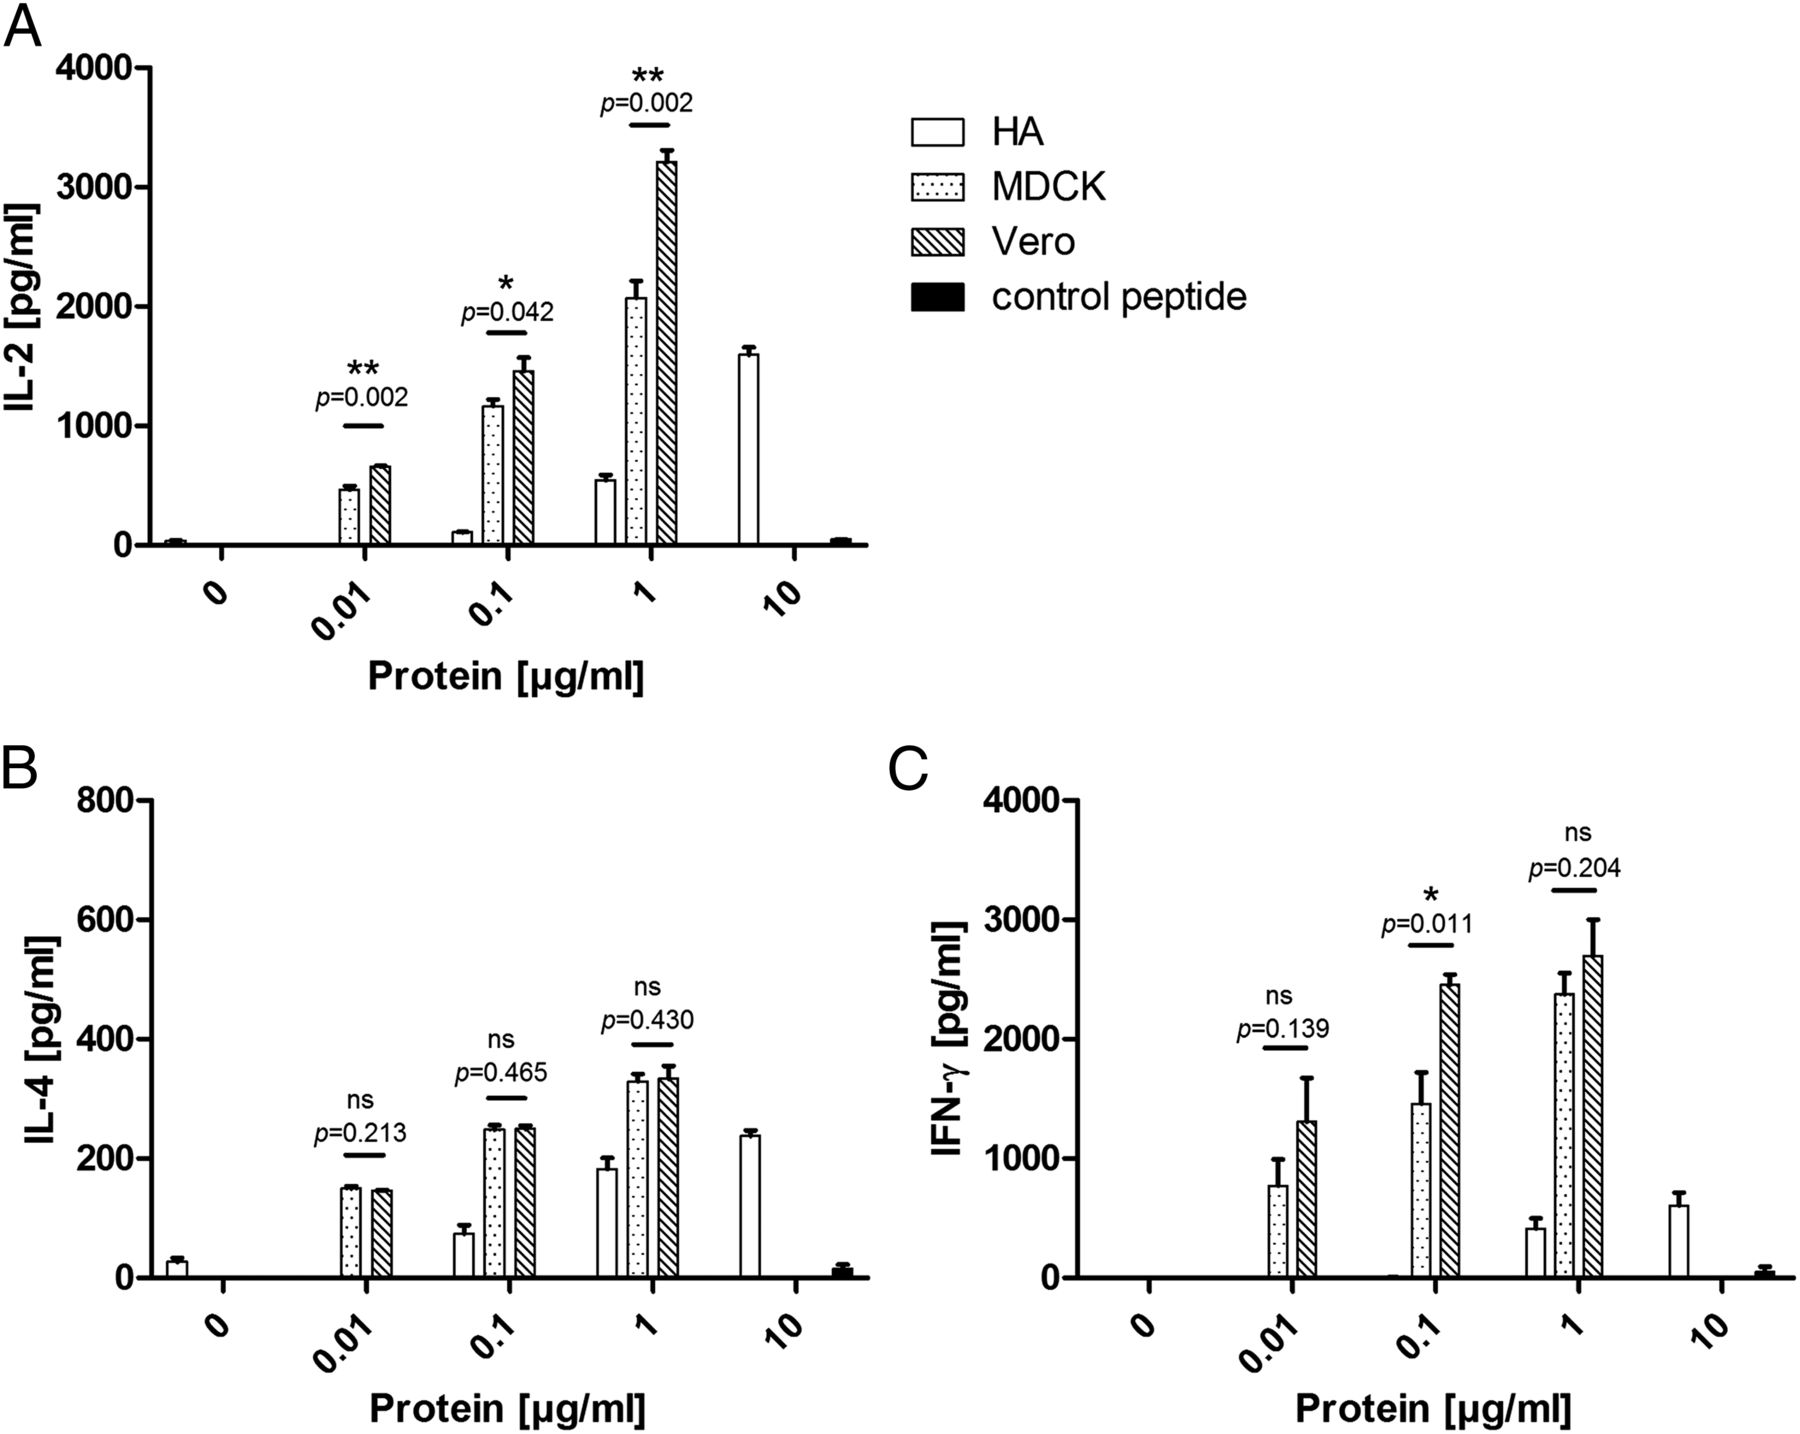 Toward Animal Cell Culture Based Influenza Vaccine Design